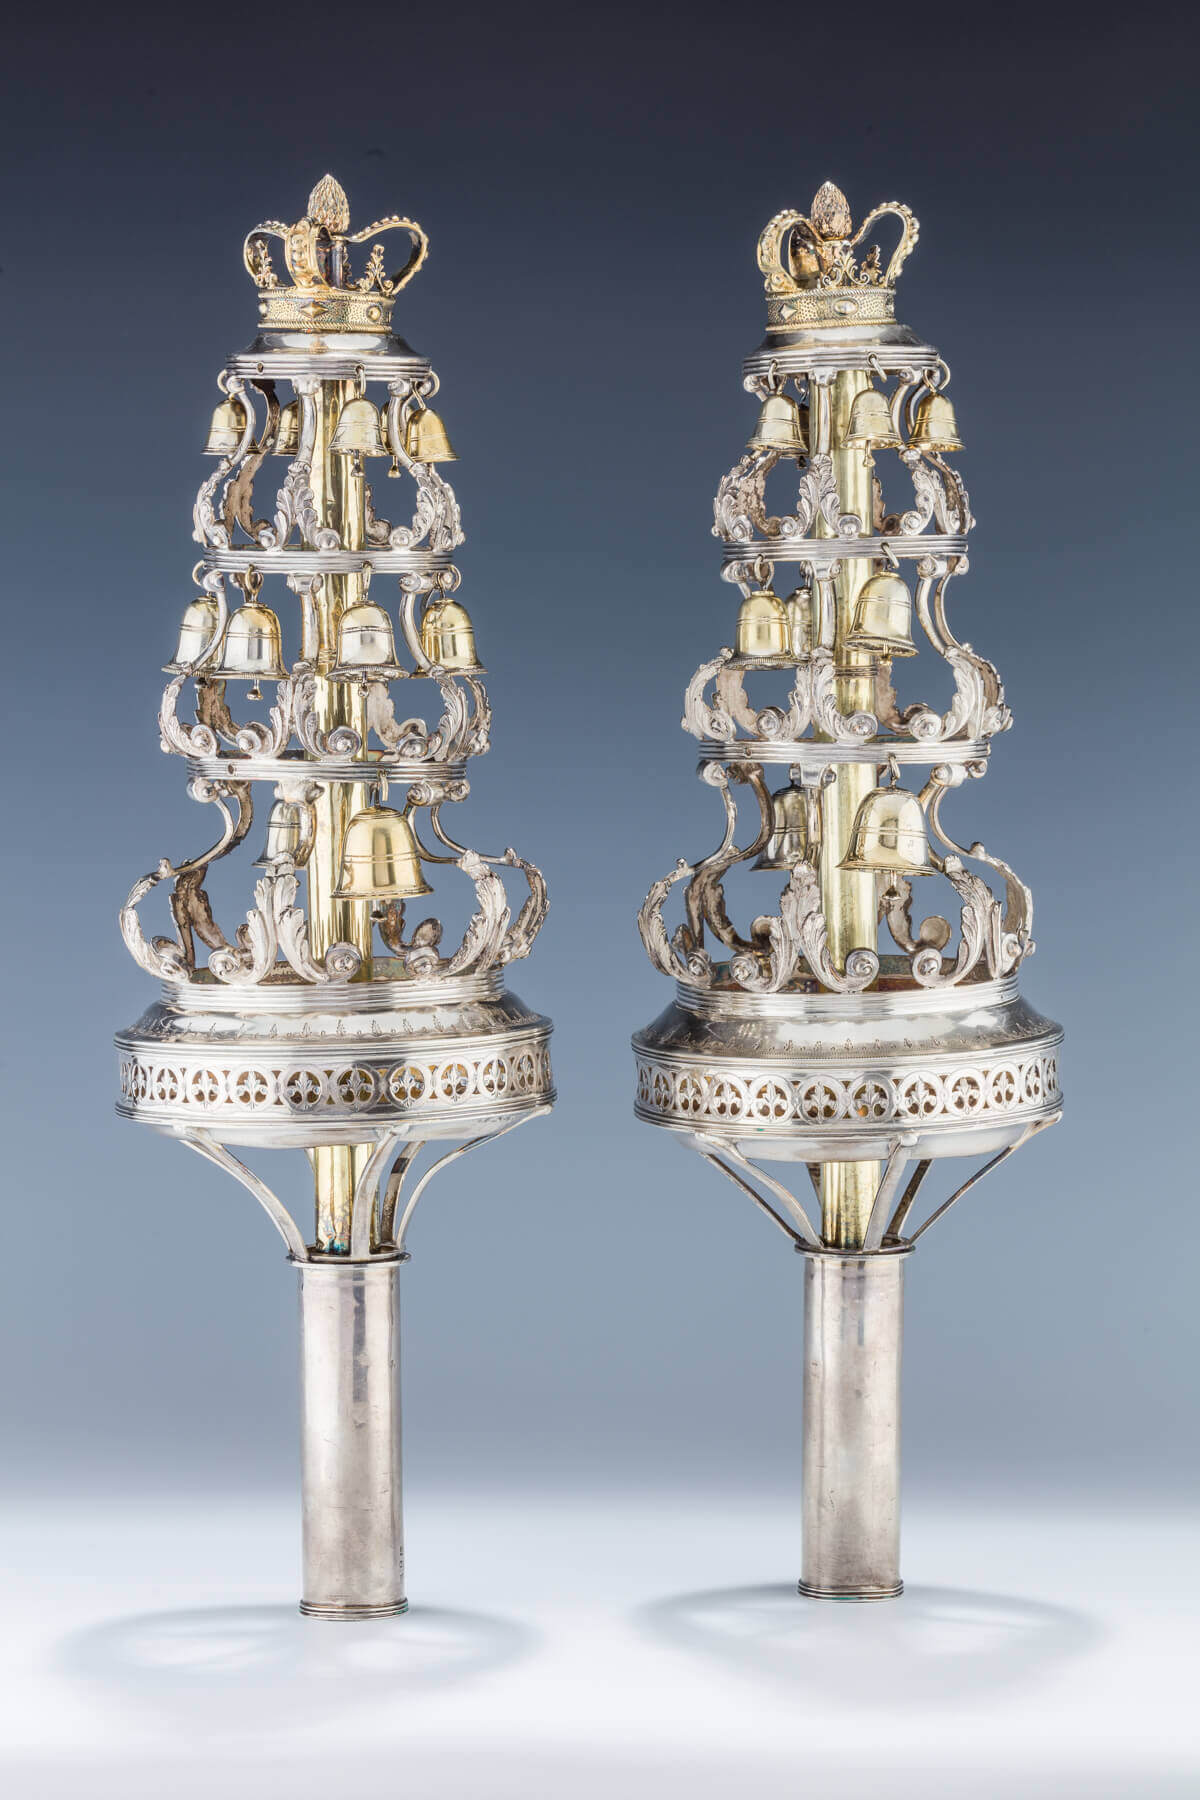 109. A PAIR OF STERLING SILVER TORAH FINIALS BY PETER AND WILLIAM BATEMAN